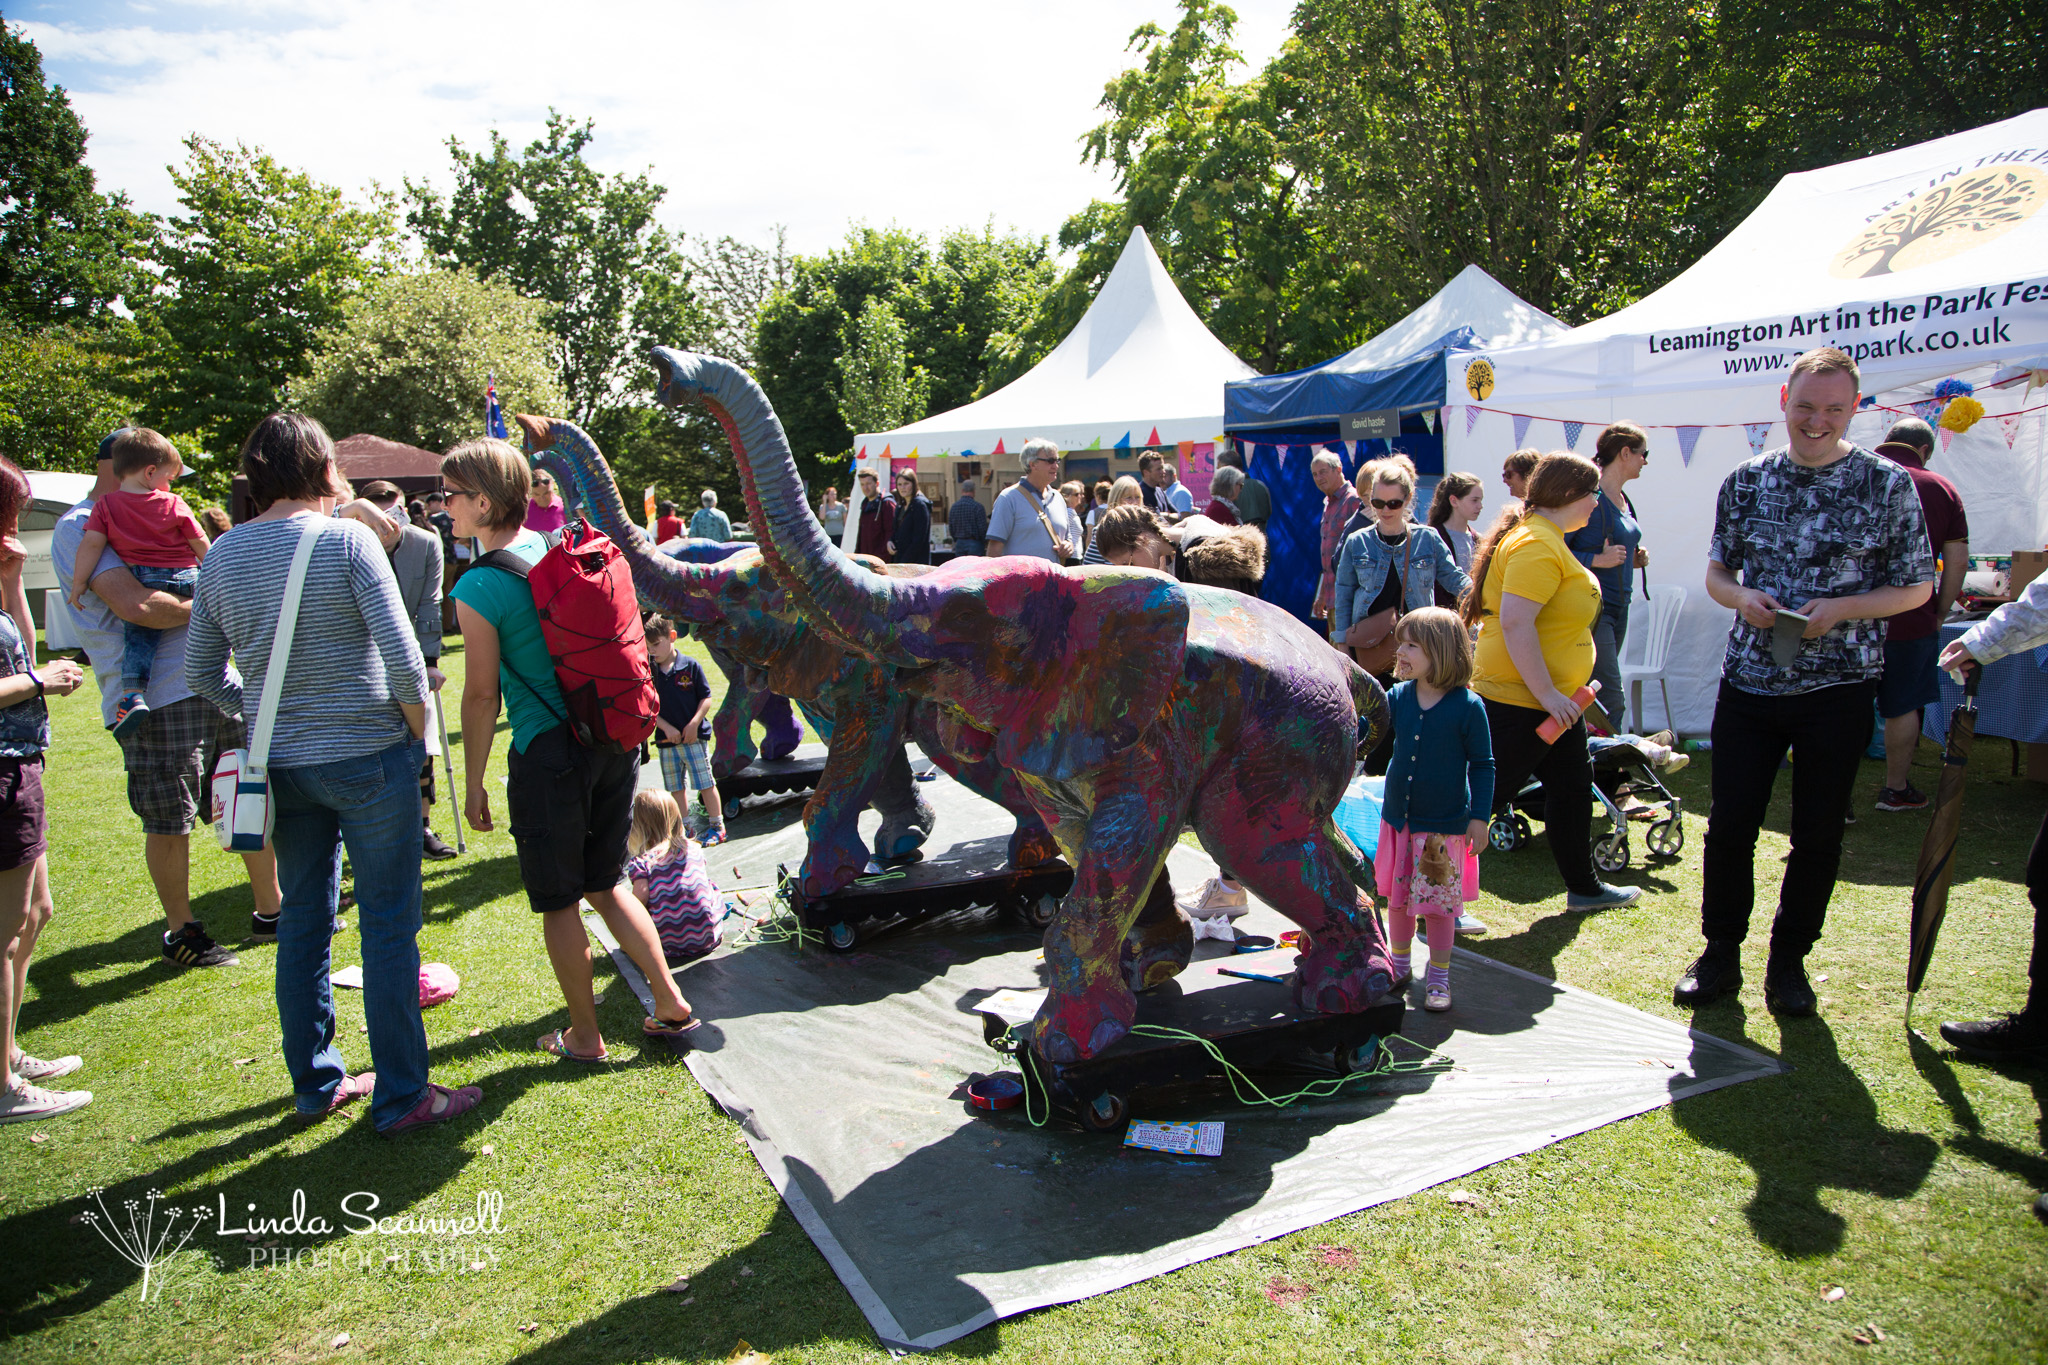 Elephants being painted at Art in the Park, Leamington Spa